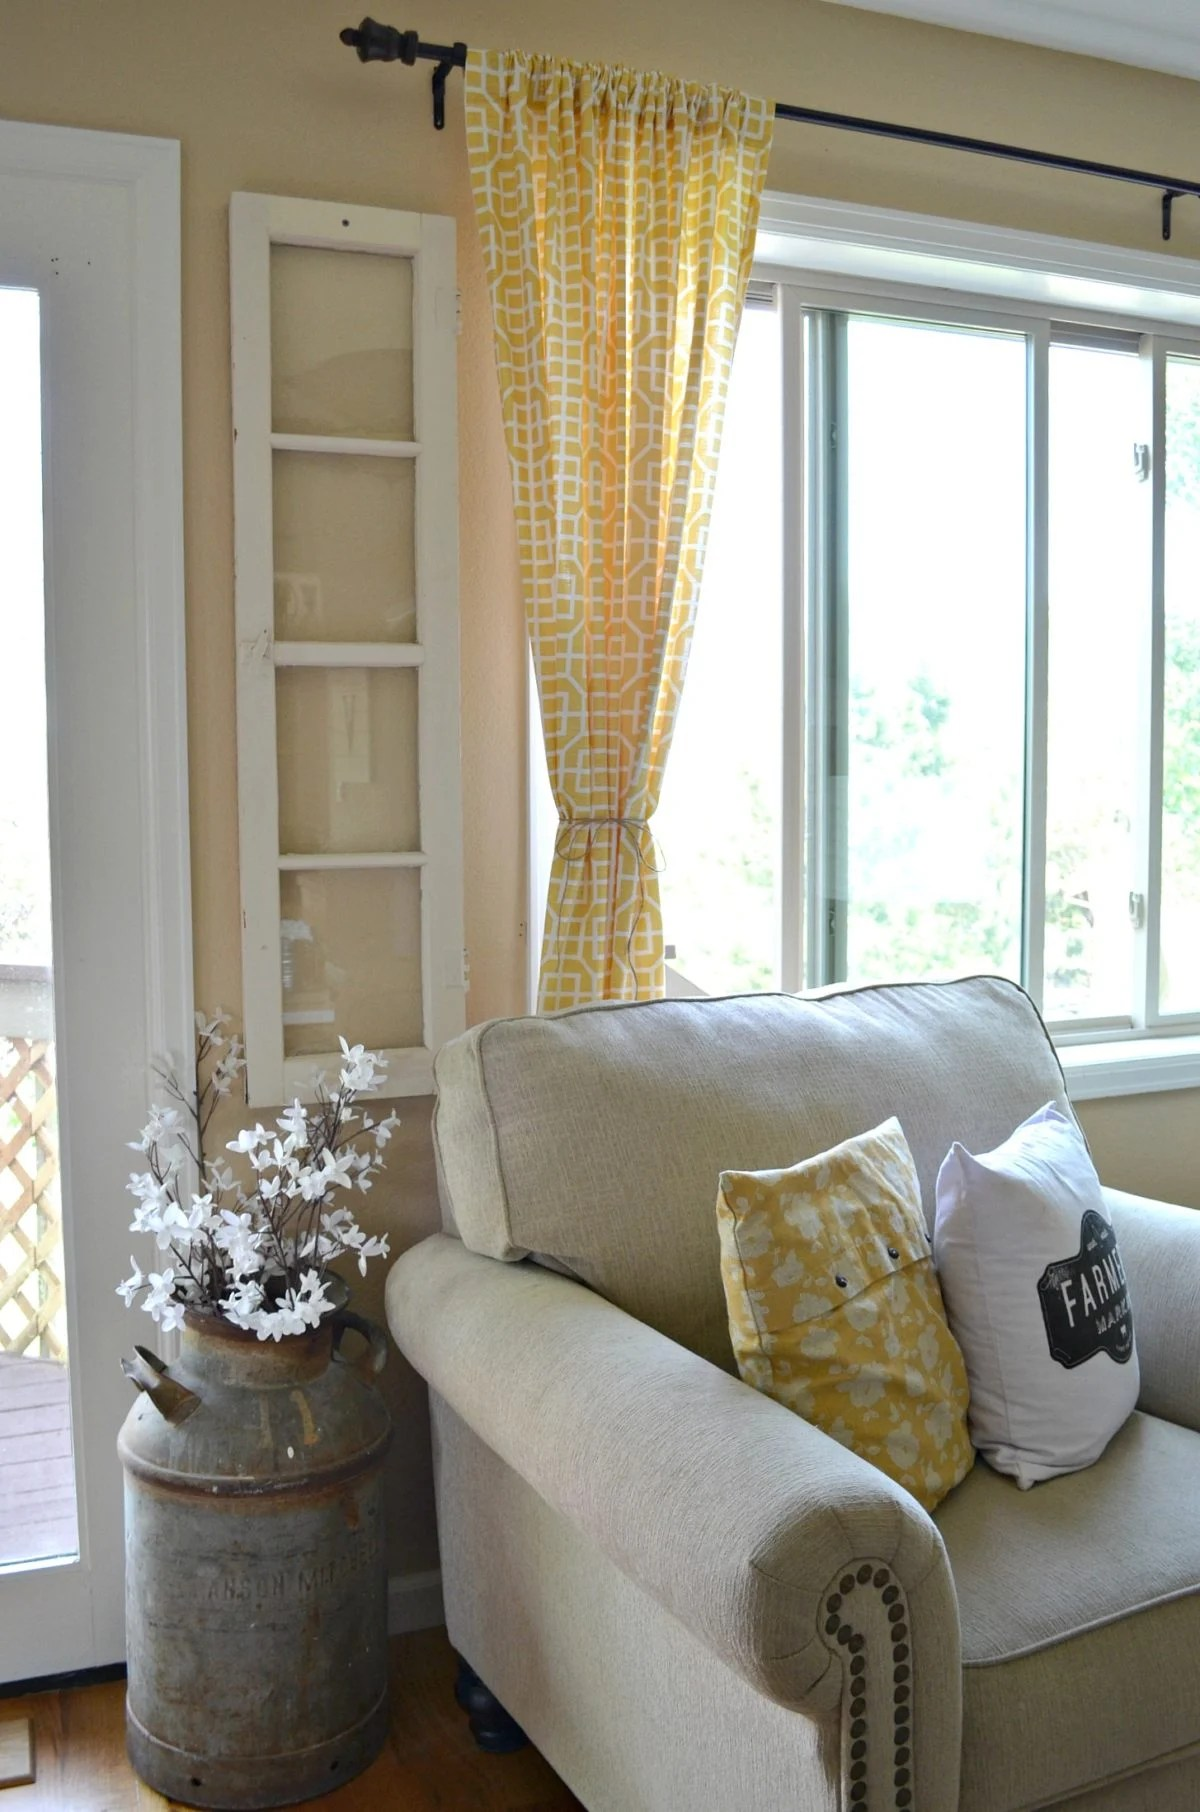 4 Reasons You Should Decorate with Old Windows - Little ... on Farmhouse Living Room Curtain Ideas  id=97664